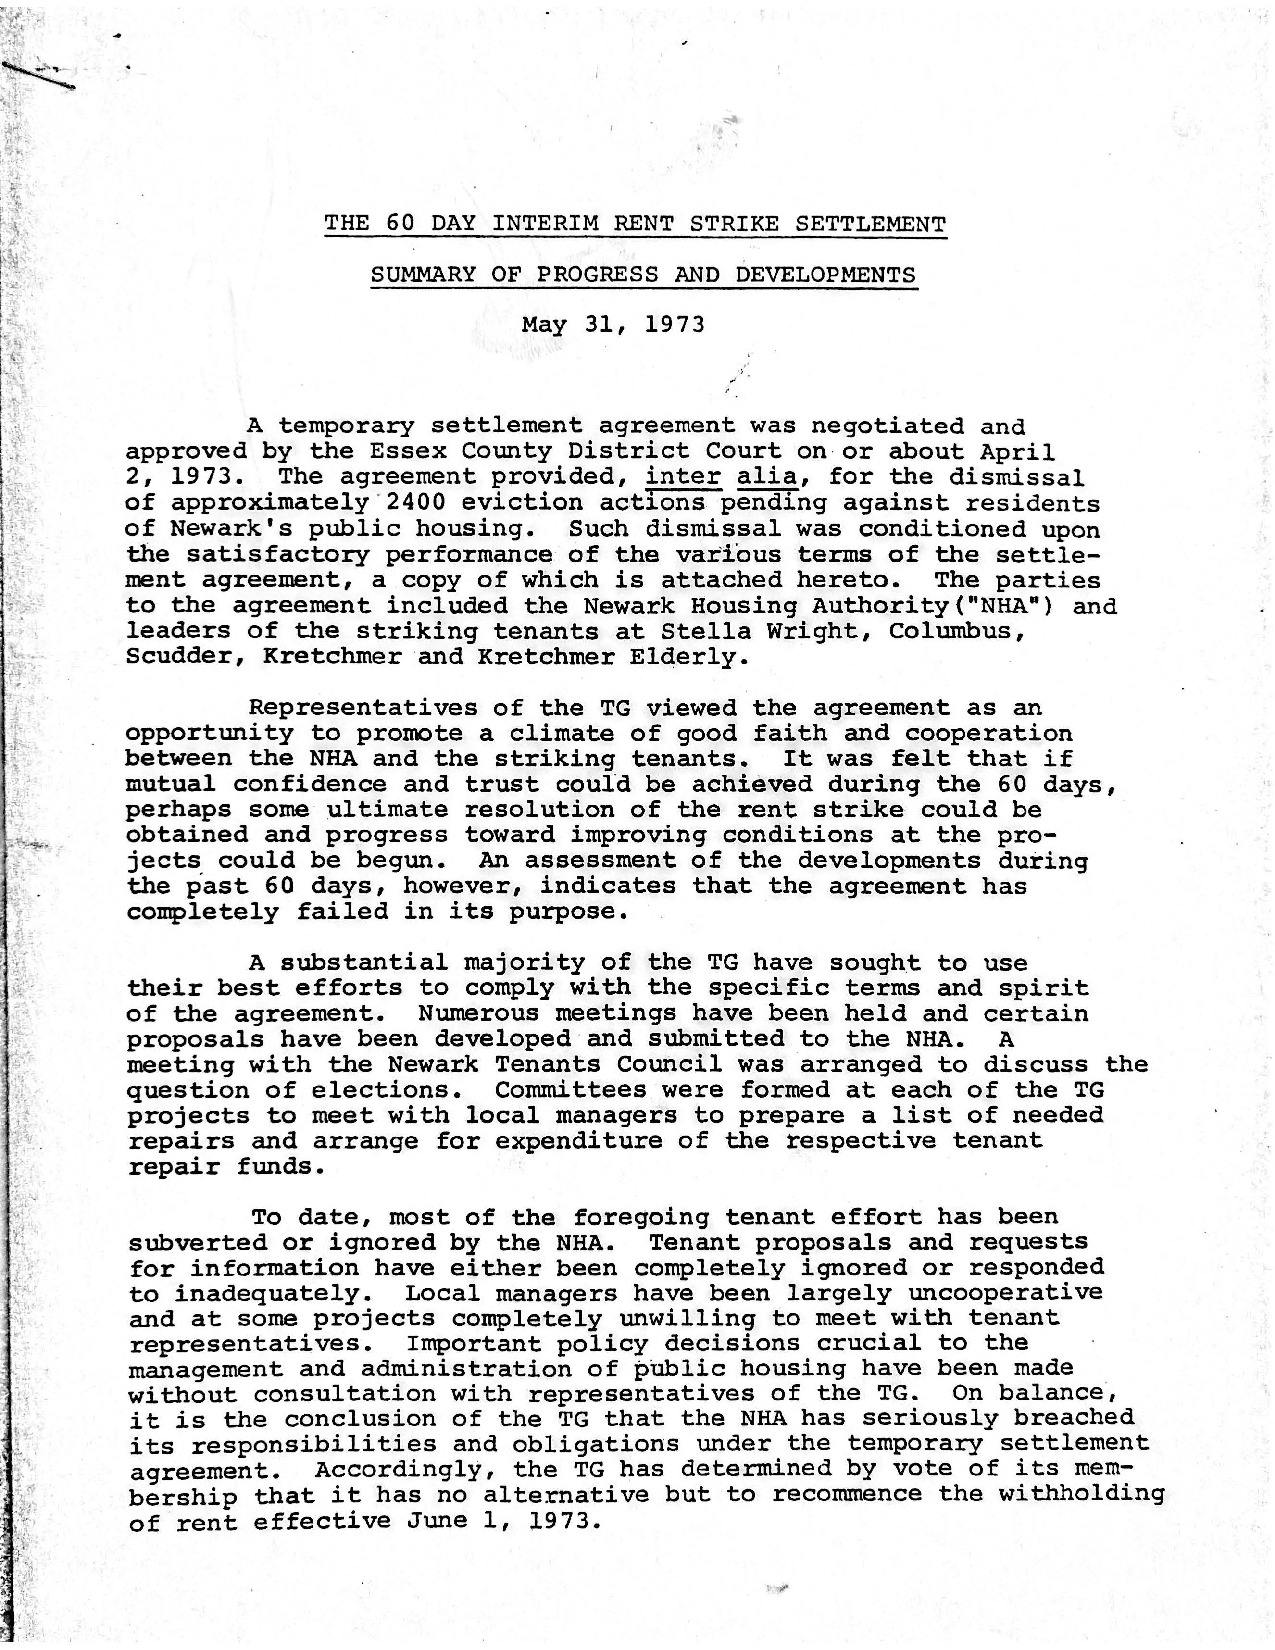 The 60 Day Interim Rent Strike Settlement (May 31, 1973)